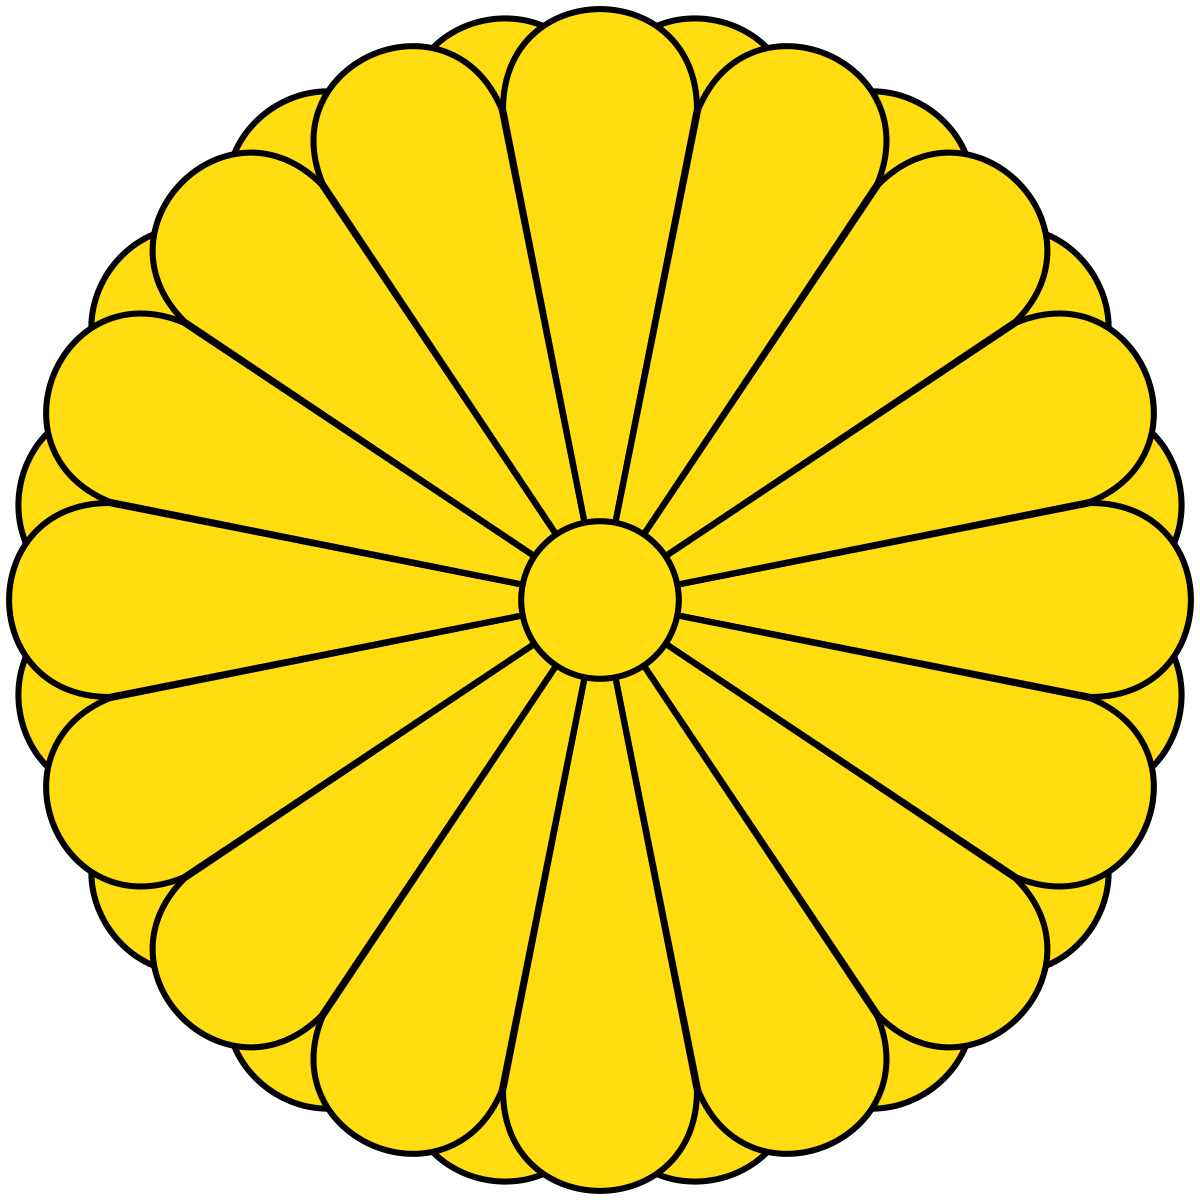 Nationality law wikipedia . Palace clipart old house japanese